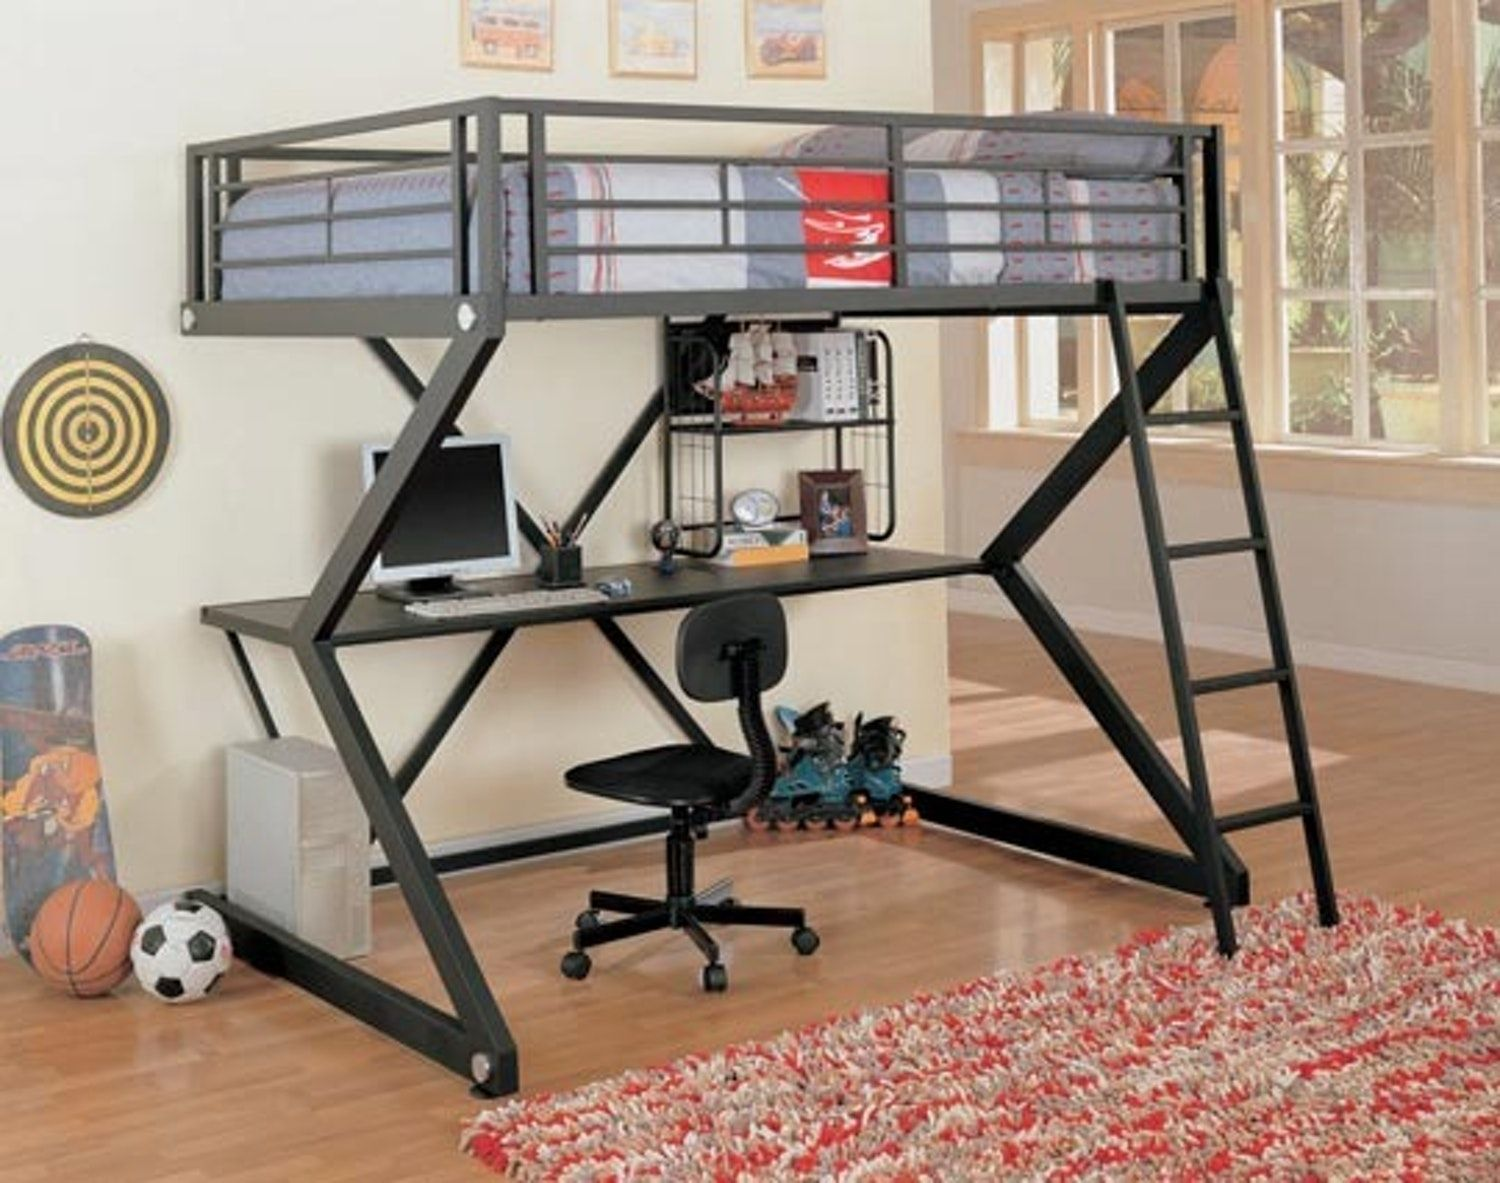 King size loft bed with stairs  Loft Bed Workstation Perfect for Students u Small Spaces  Bunk bed